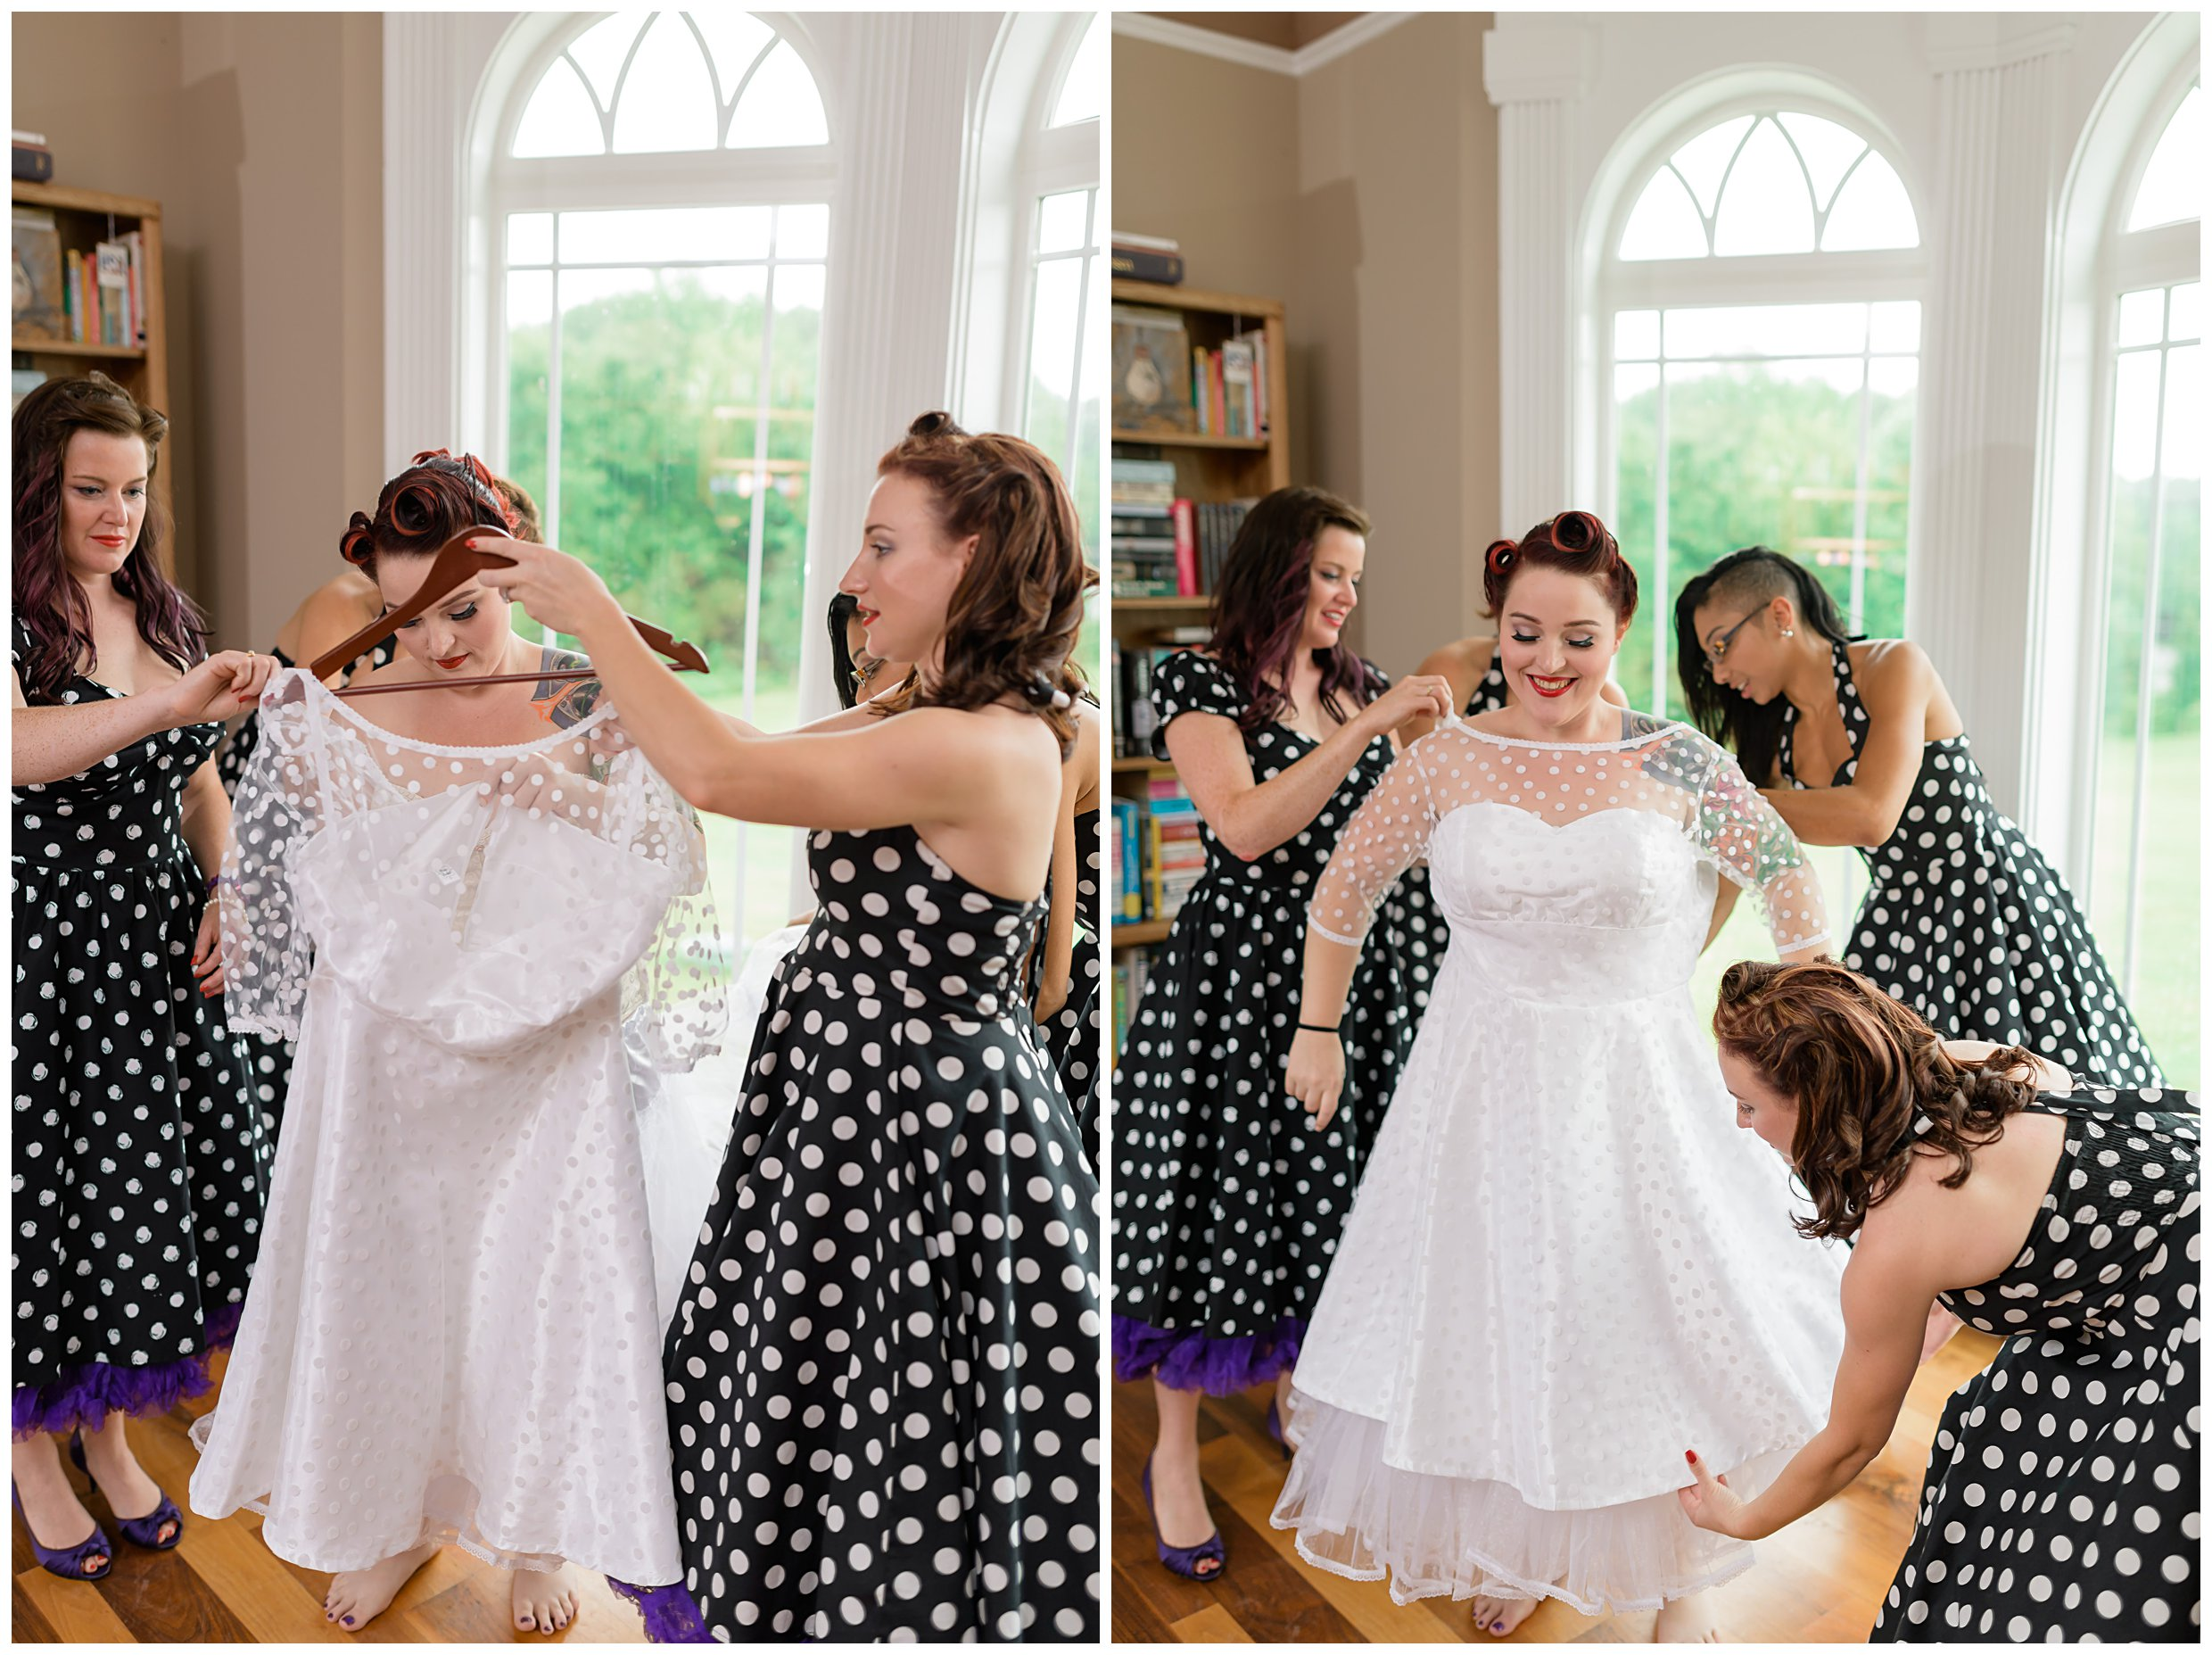 Kat and Dave | Married_Stephanie Kopf Photography-101.jpg